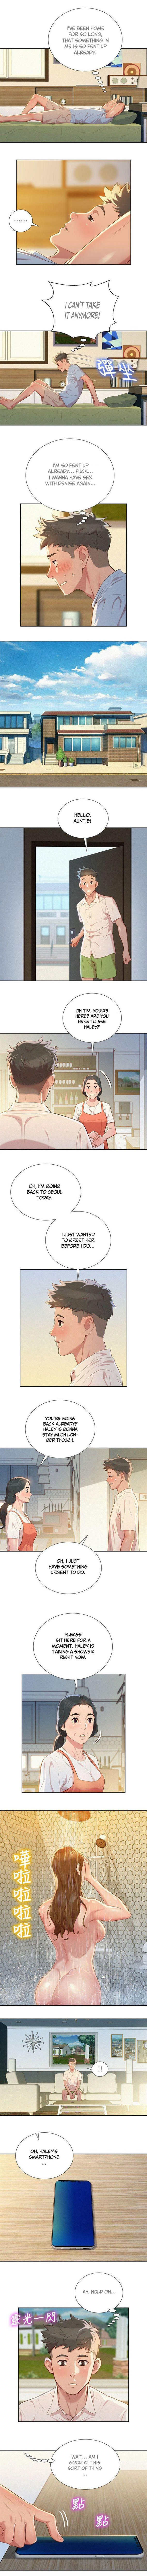 What do you Take me For? Ch.70/? 328